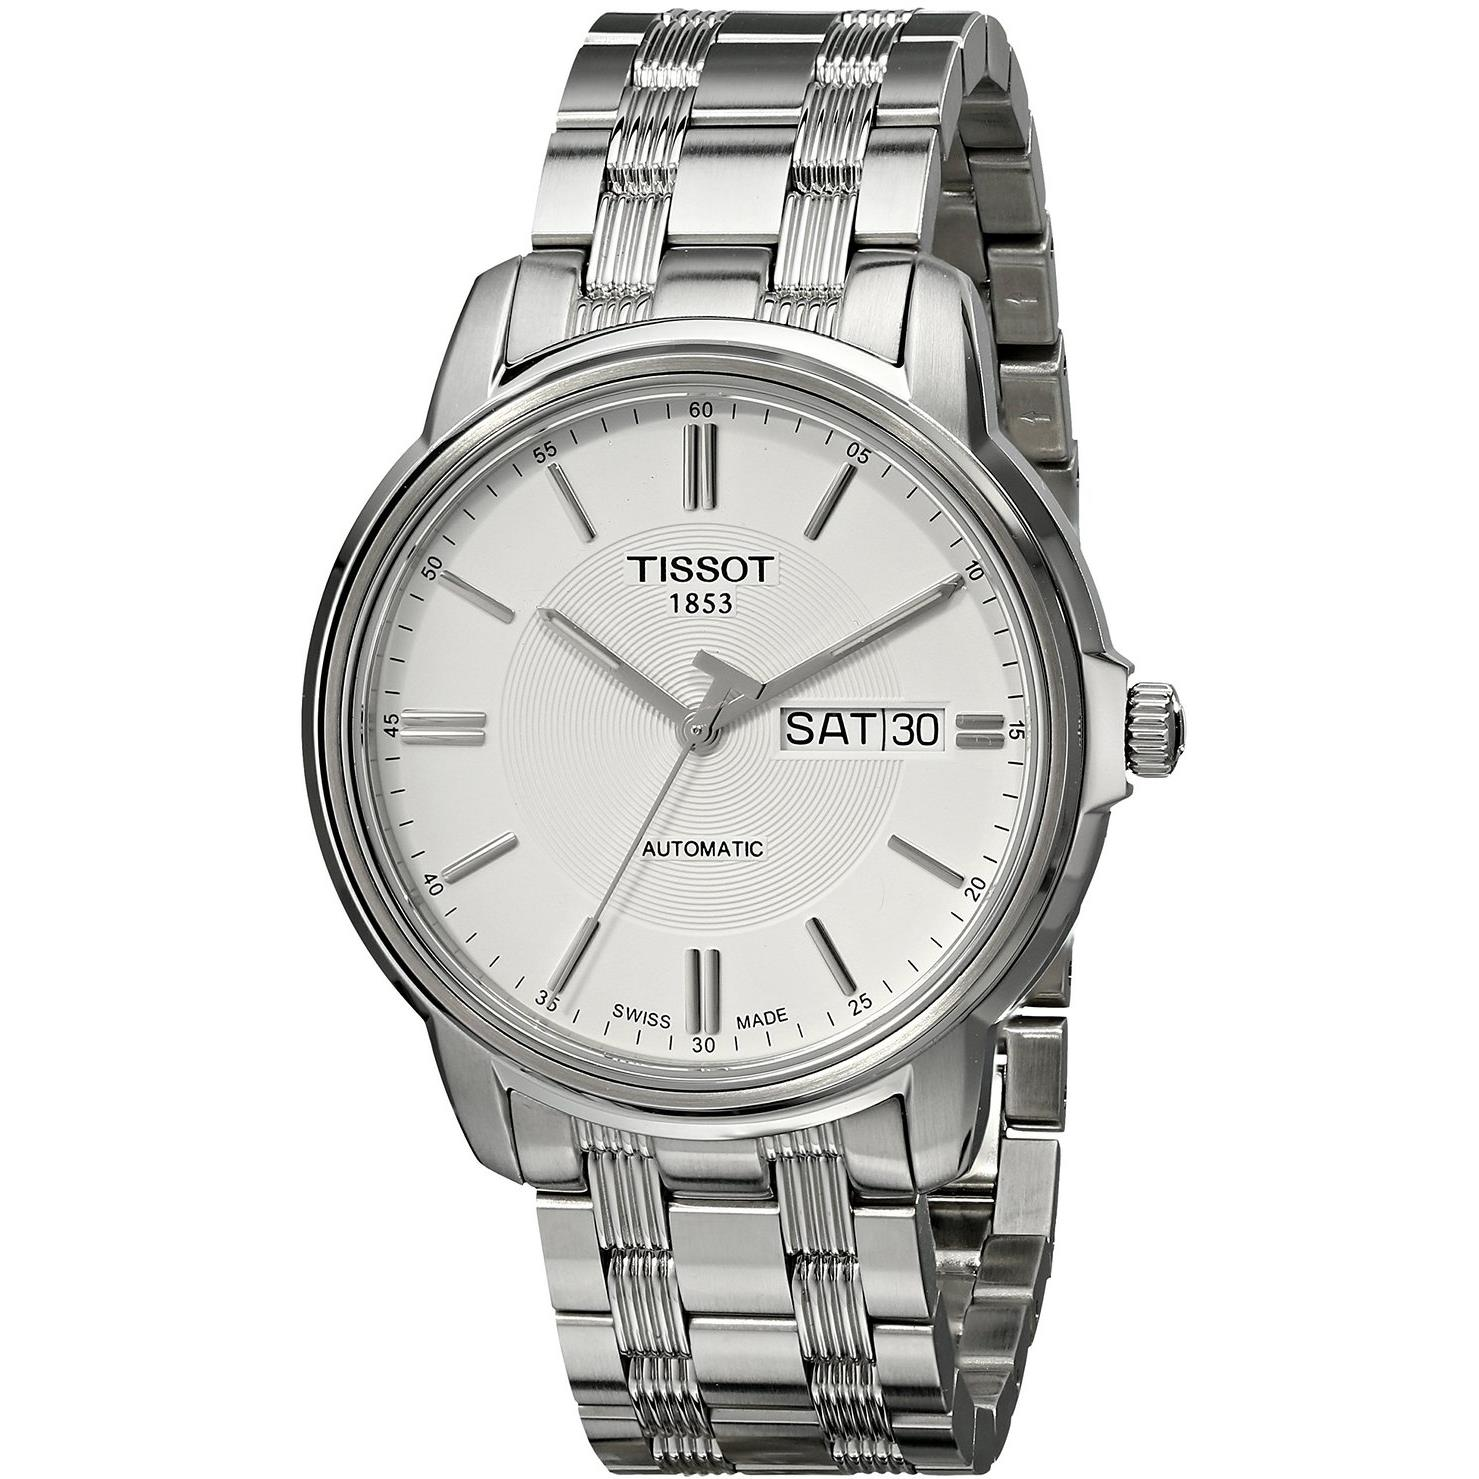 Tissot Men's Automatic III 40mm Steel Bracelet & Case Whi...